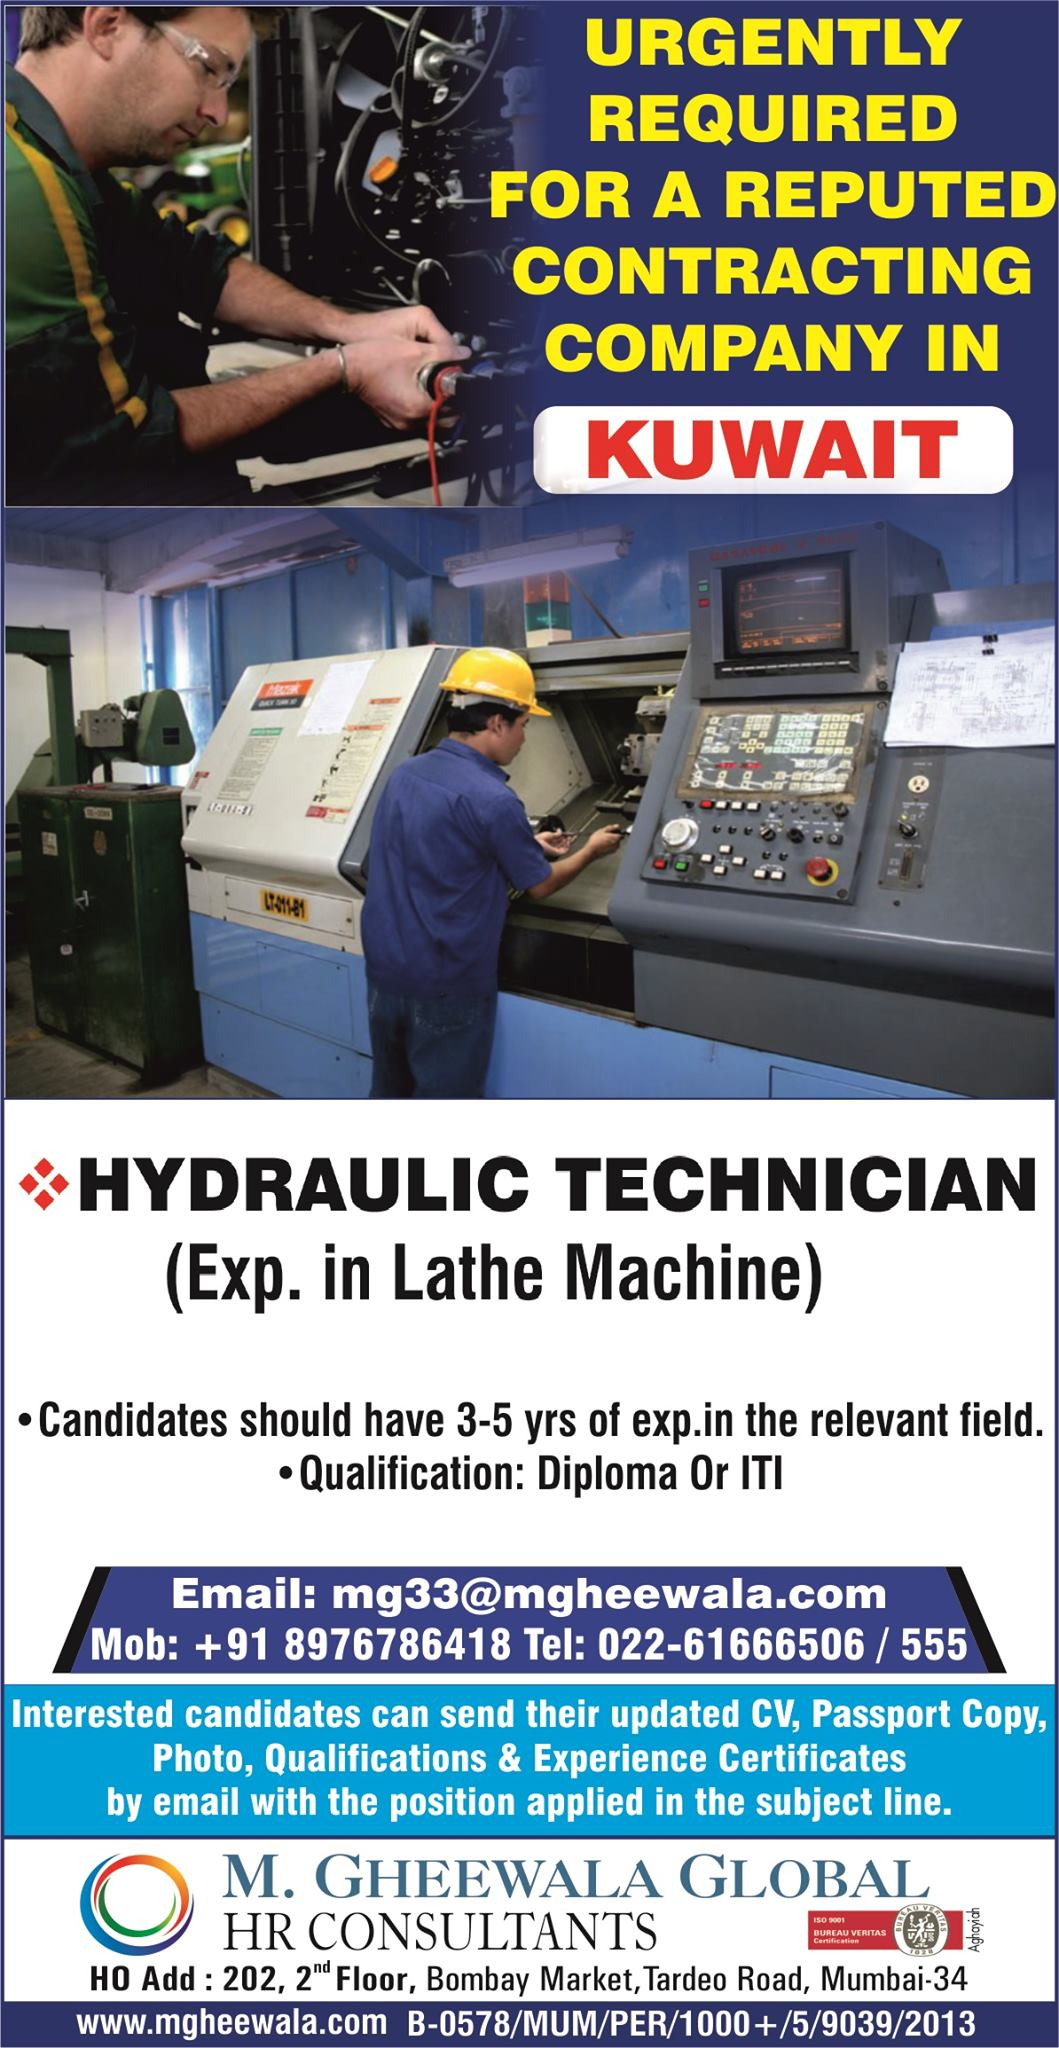 HYDRAULIC TECHNICIANS REQUIRED FOR KUWAIT